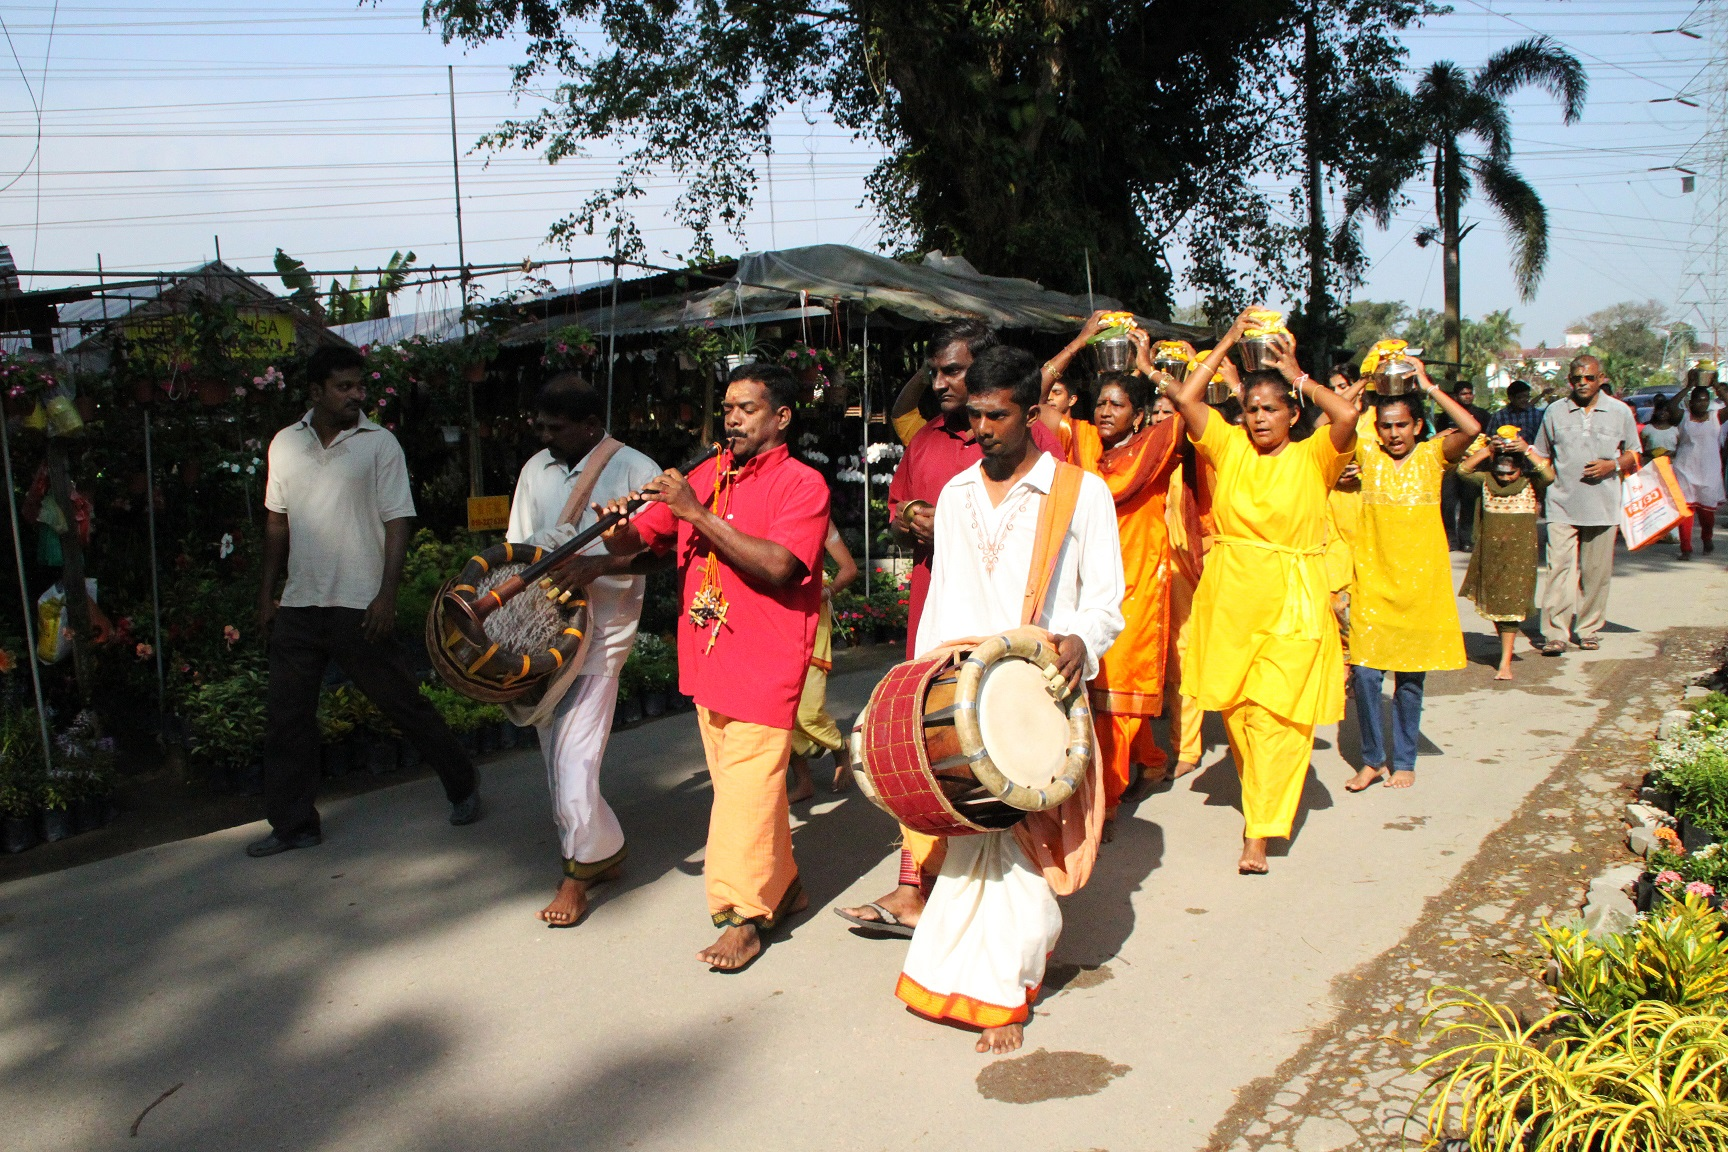 A procession by the Indians to celebrate Thaipusam in the settlement.    (photo by Tan Ean Nee)